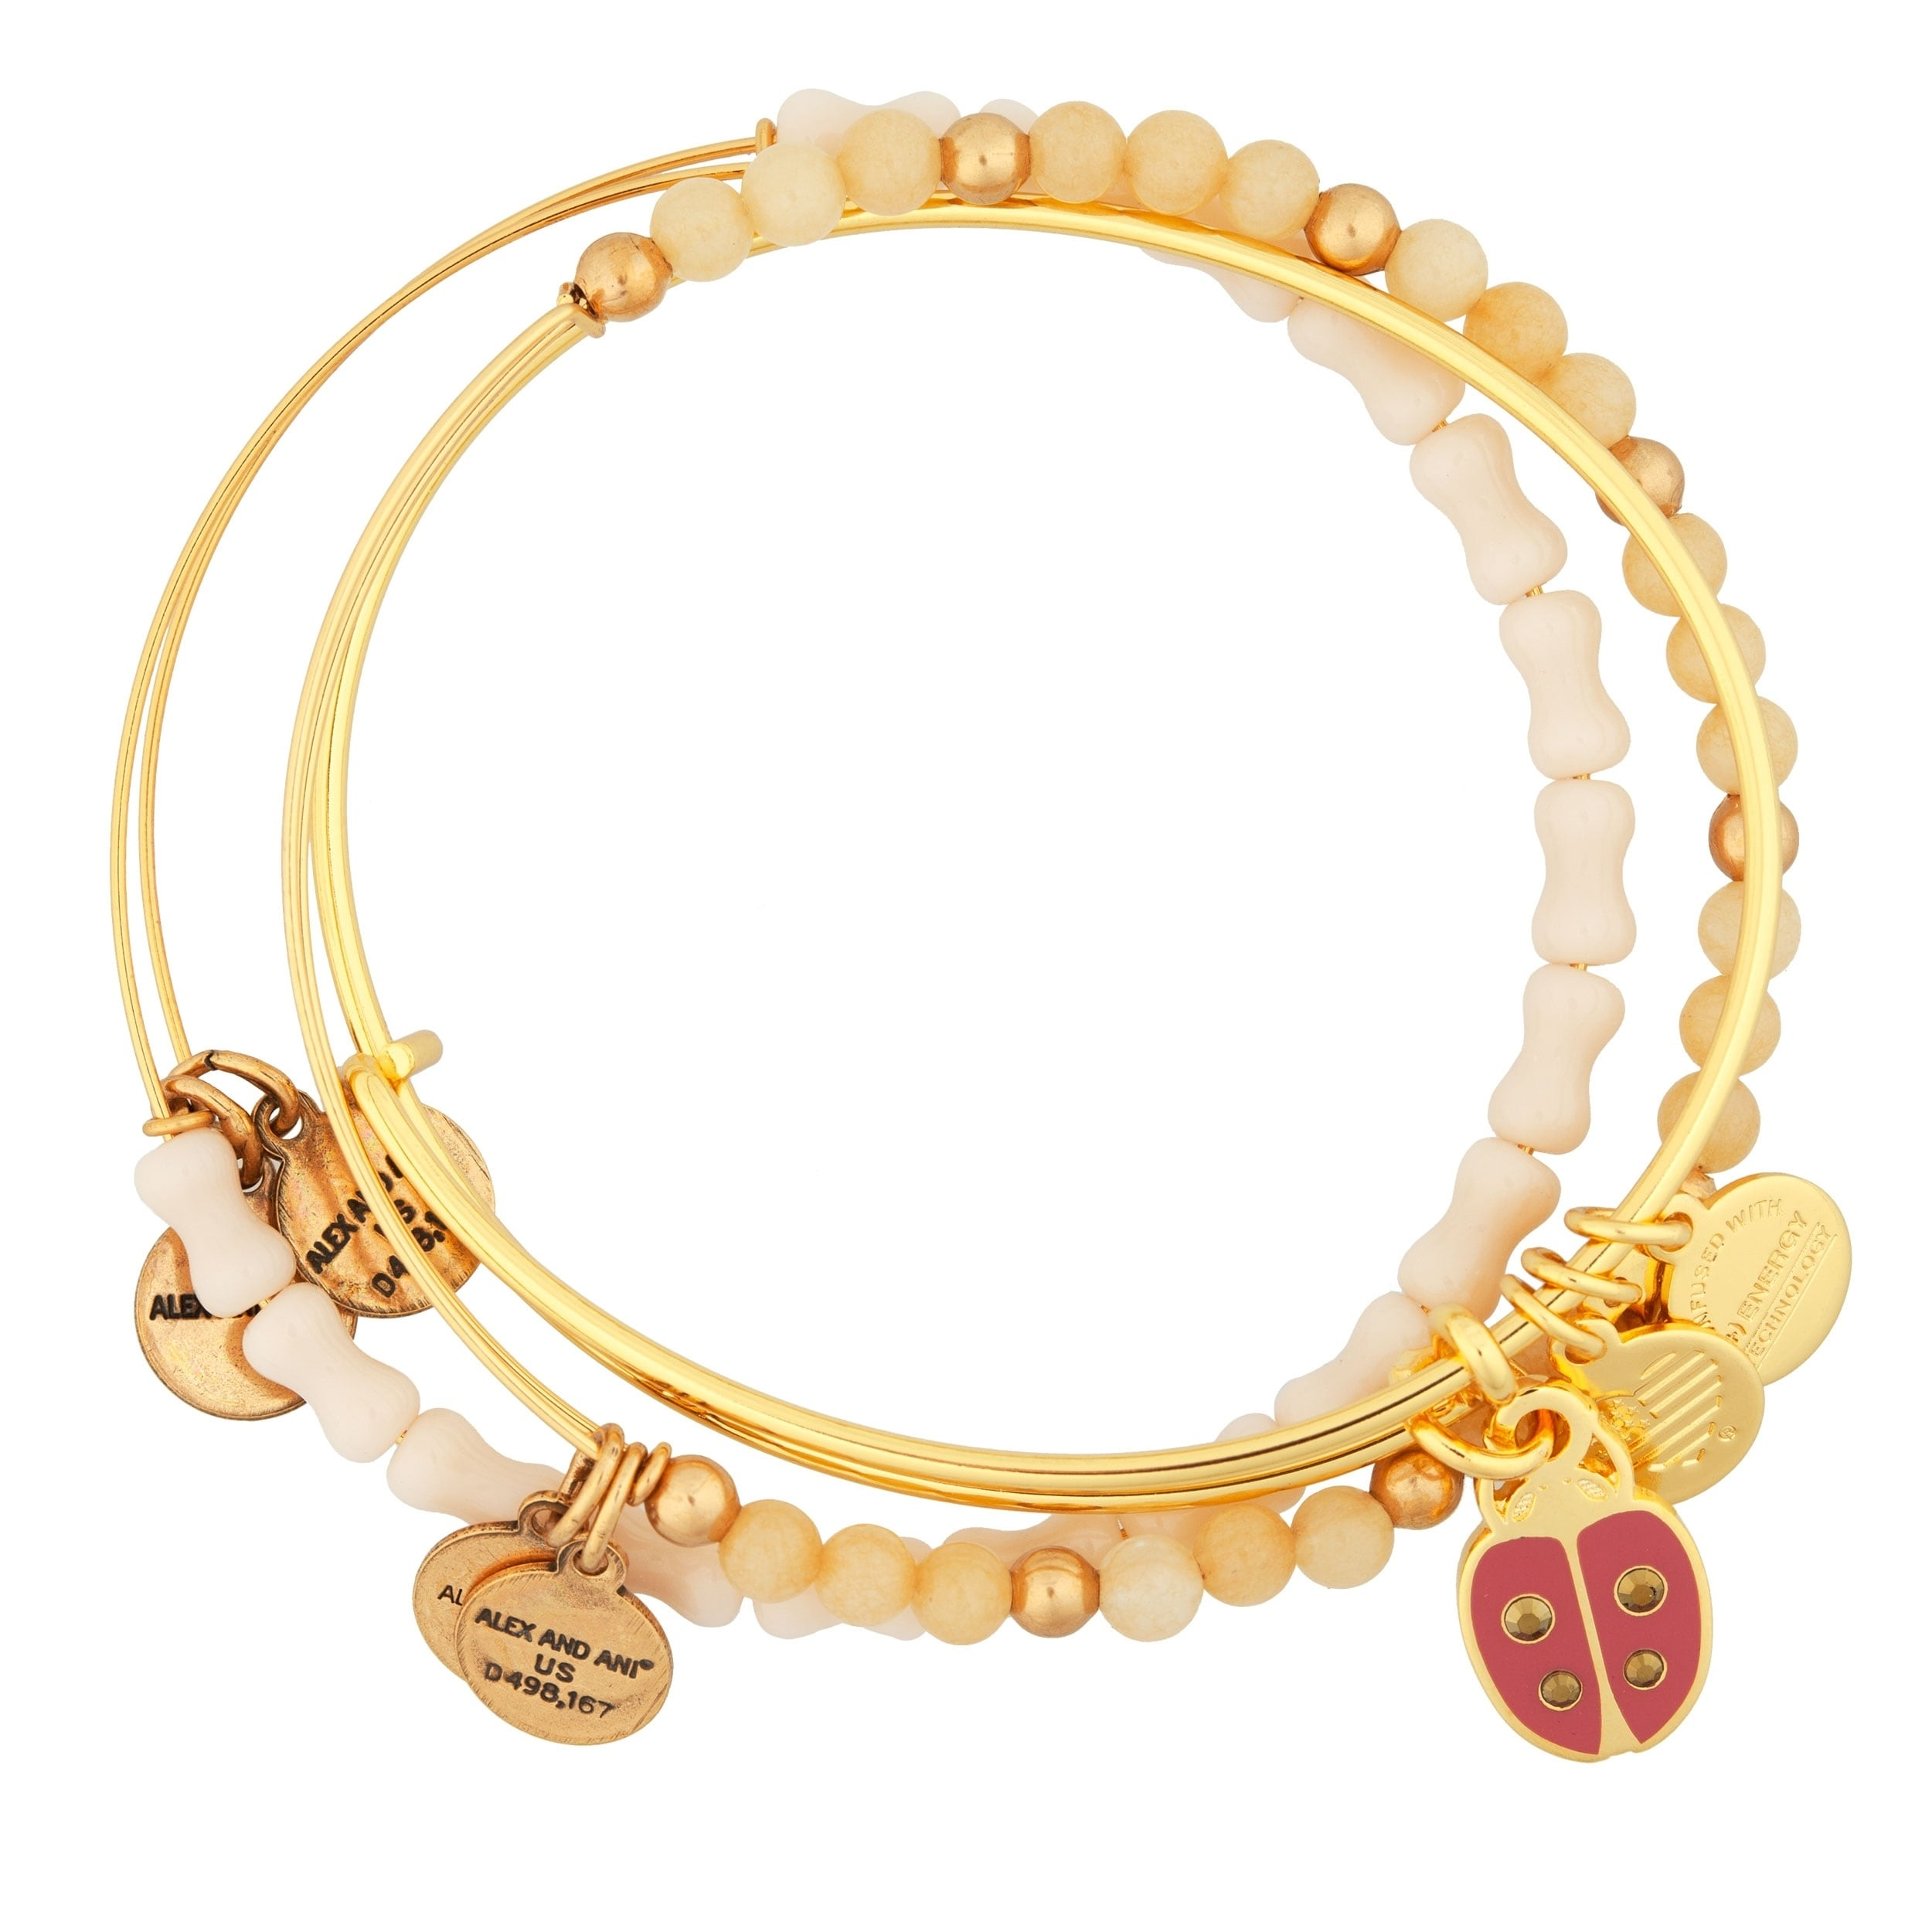 products jewelry semiprecious of gold set with square round and stones bangles